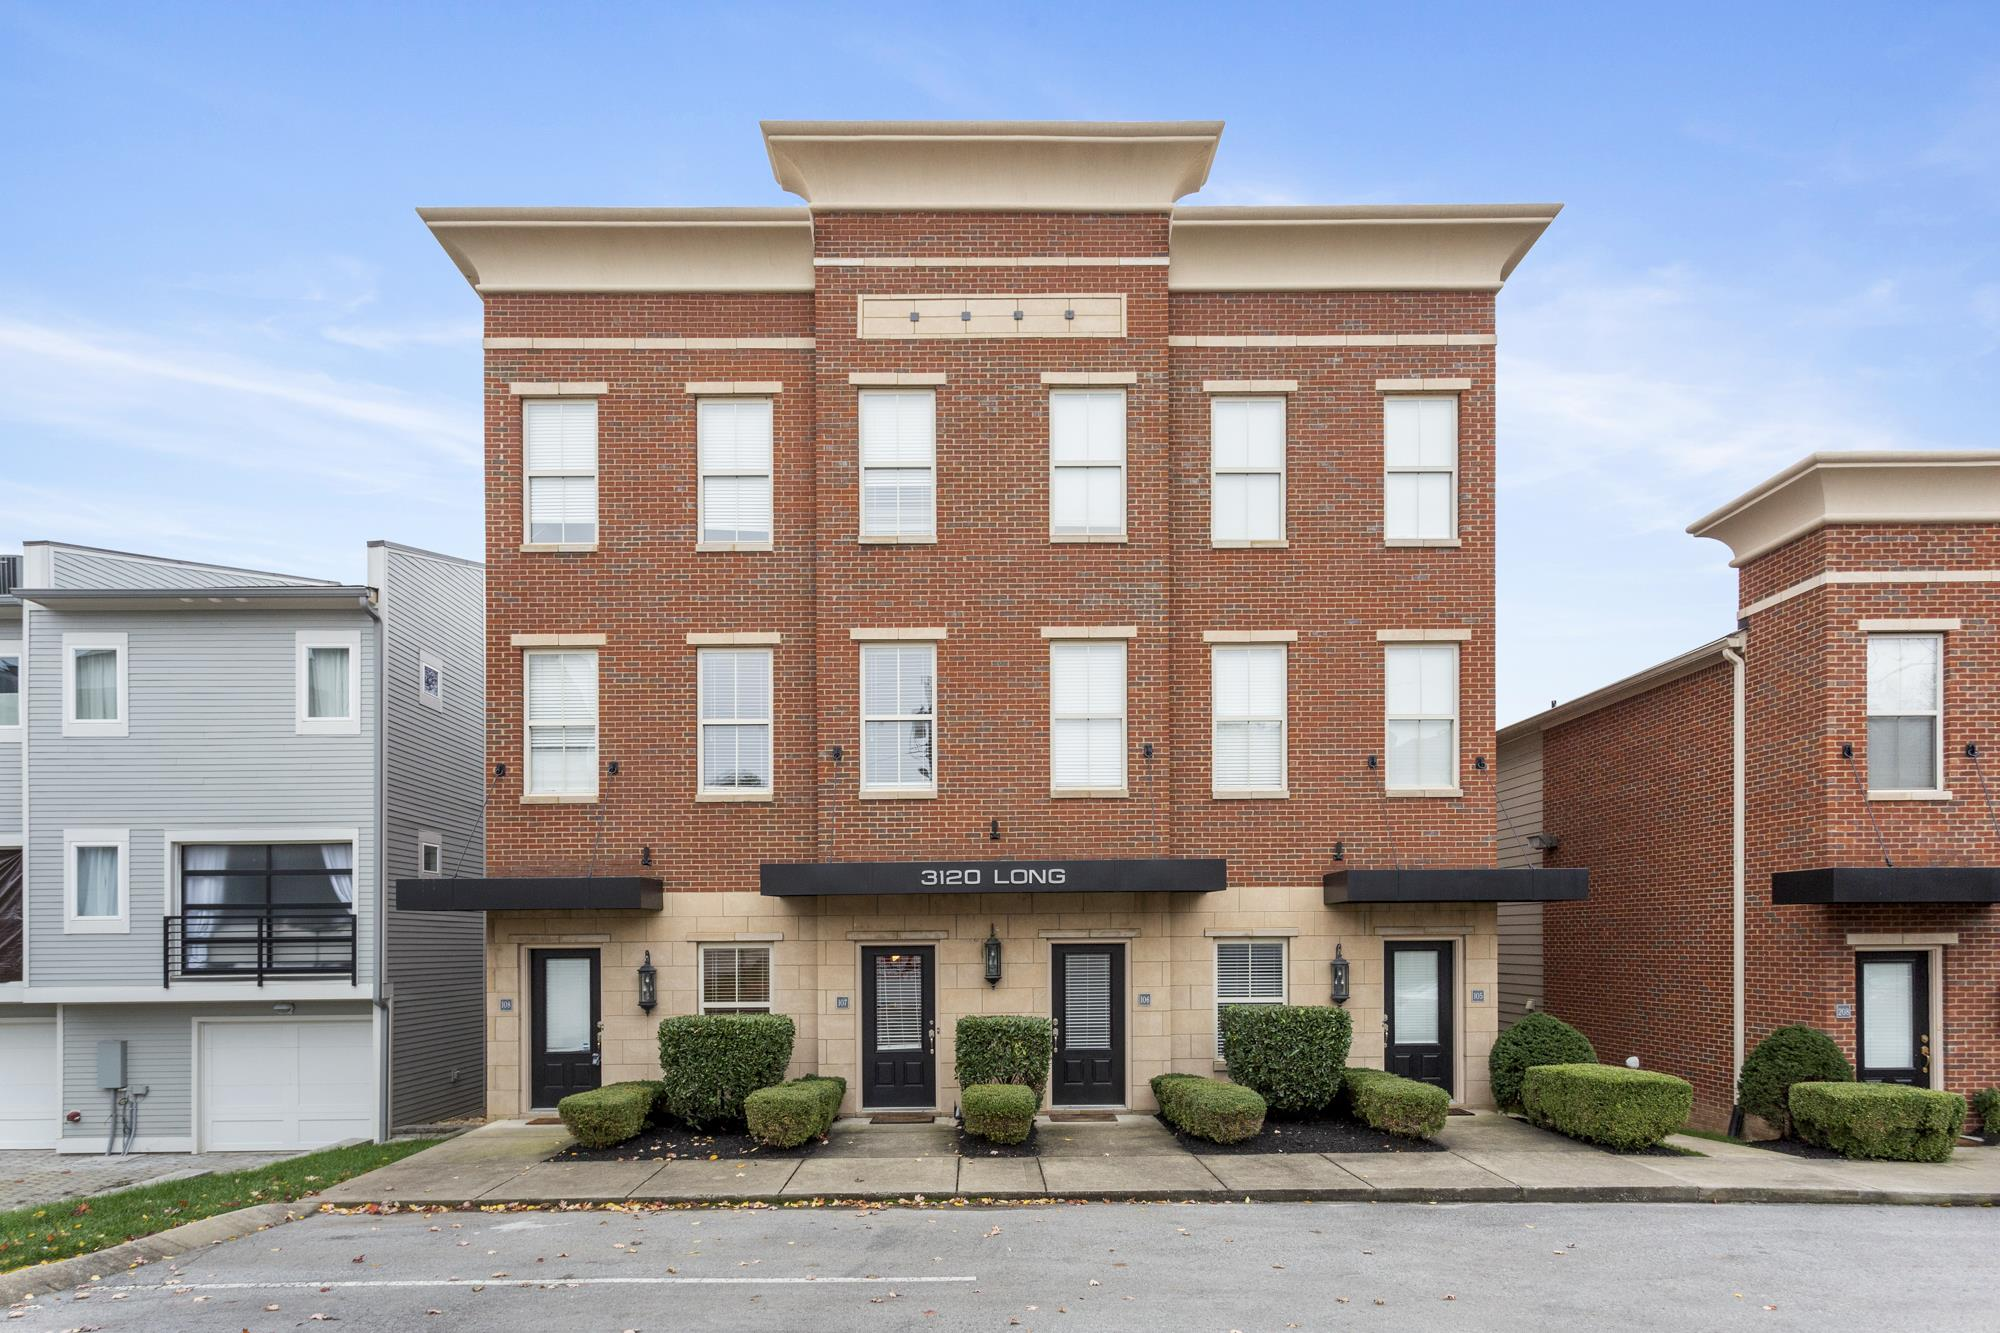 3120 Long Blvd #107, Nashville - Midtown in Davidson County County, TN 37203 Home for Sale